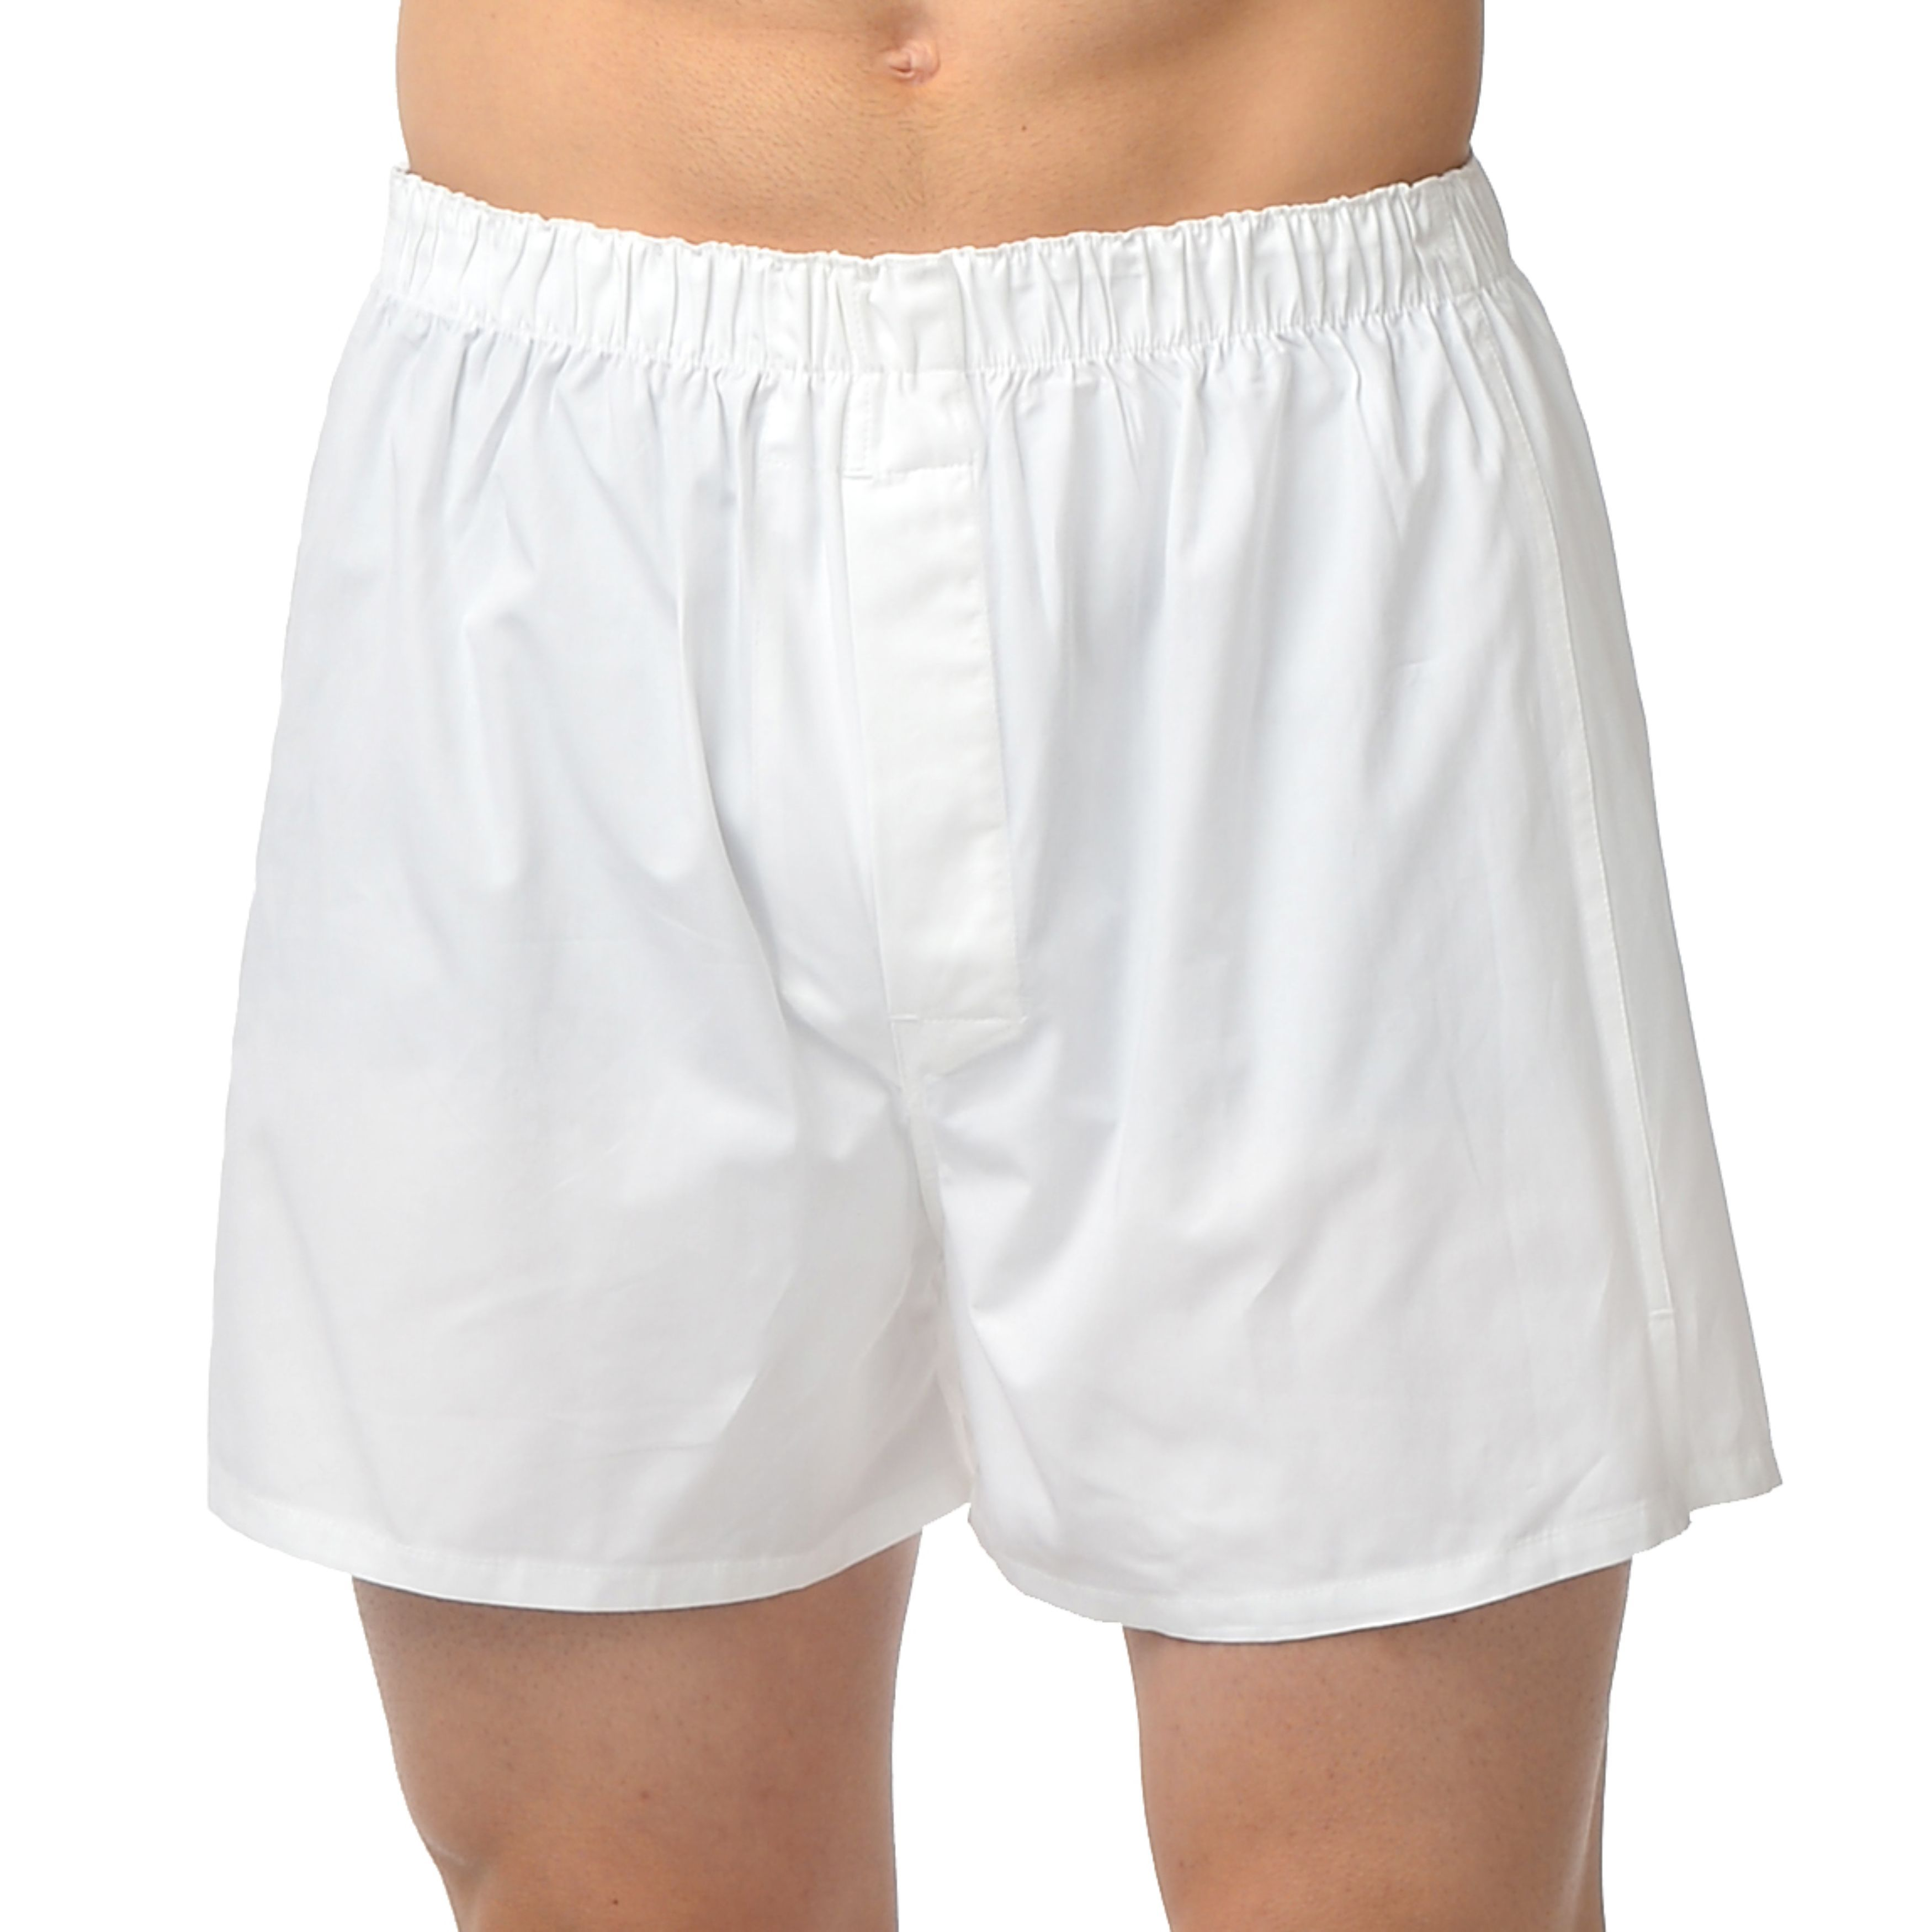 Majestic Men's Bigs Basic All-cotton Boxers (White Size-4...